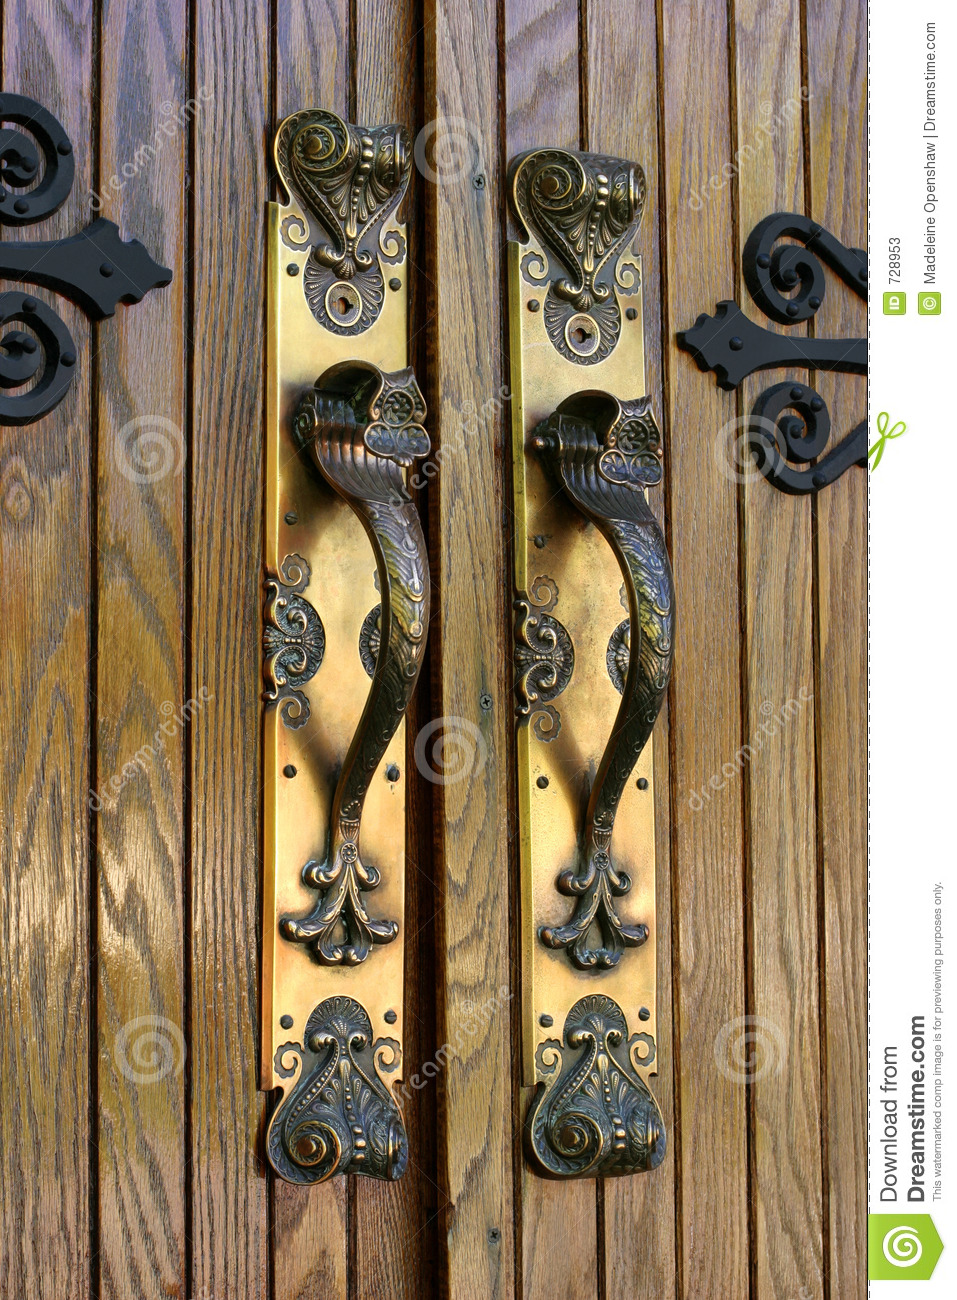 Ornate Brass Door Handles Stock Photos Image 728953